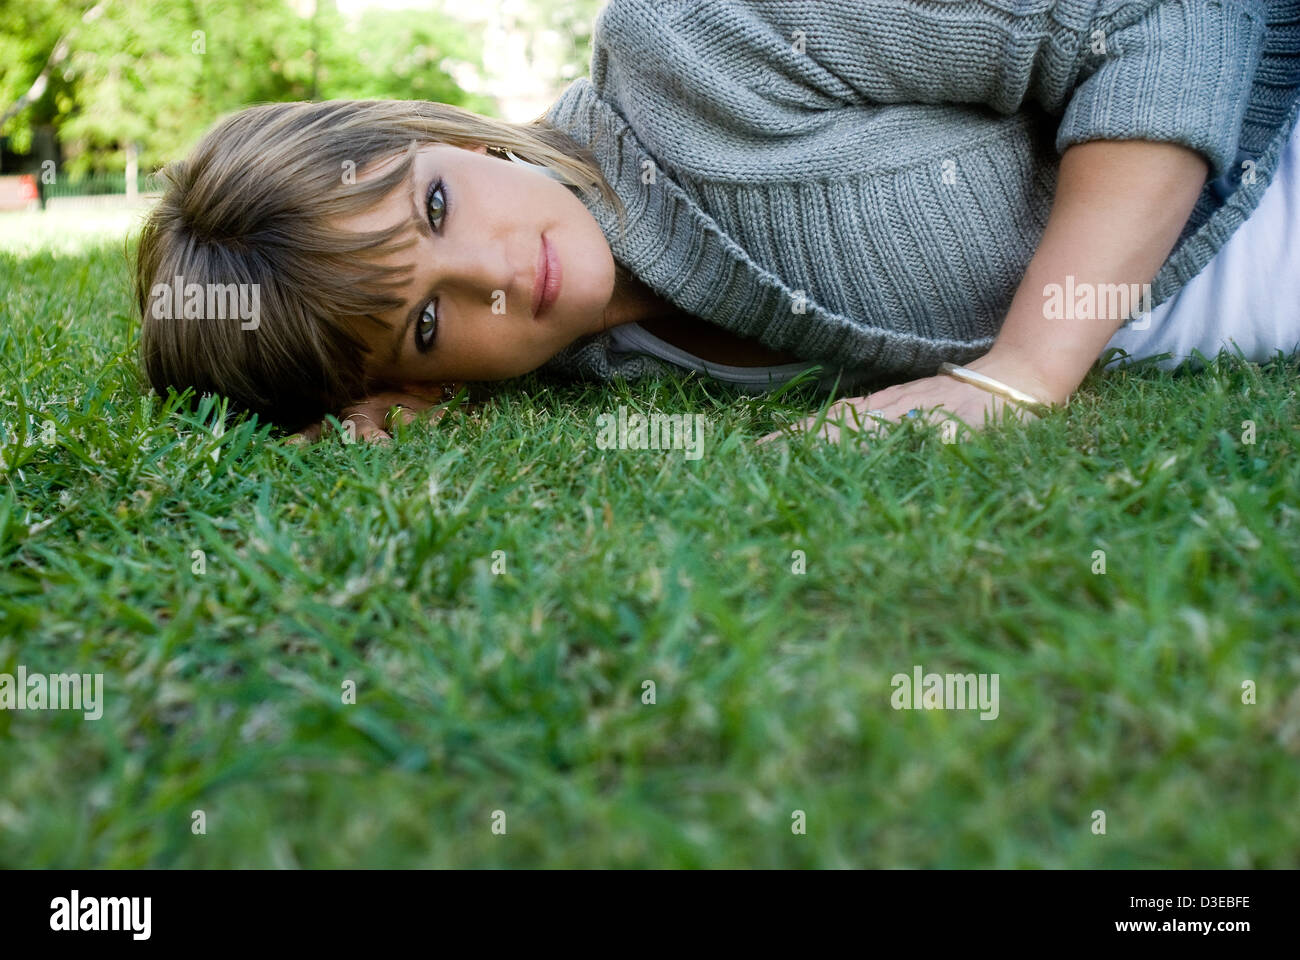 Woman lying in park - Stock Image